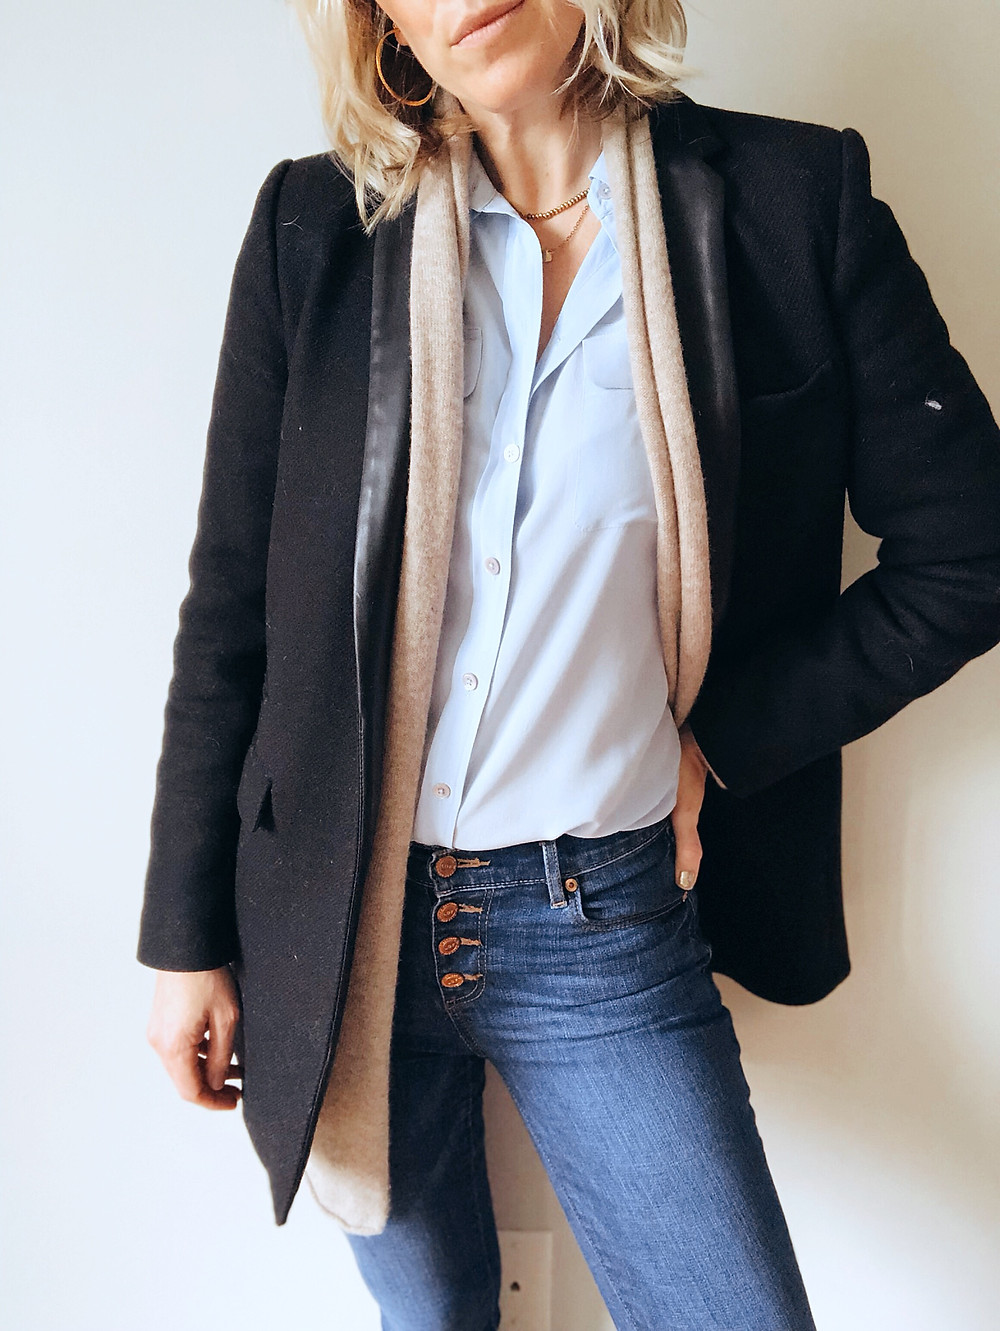 Black blazer layered ontop of tan cardigan, blue blouse, and button-front jeans.